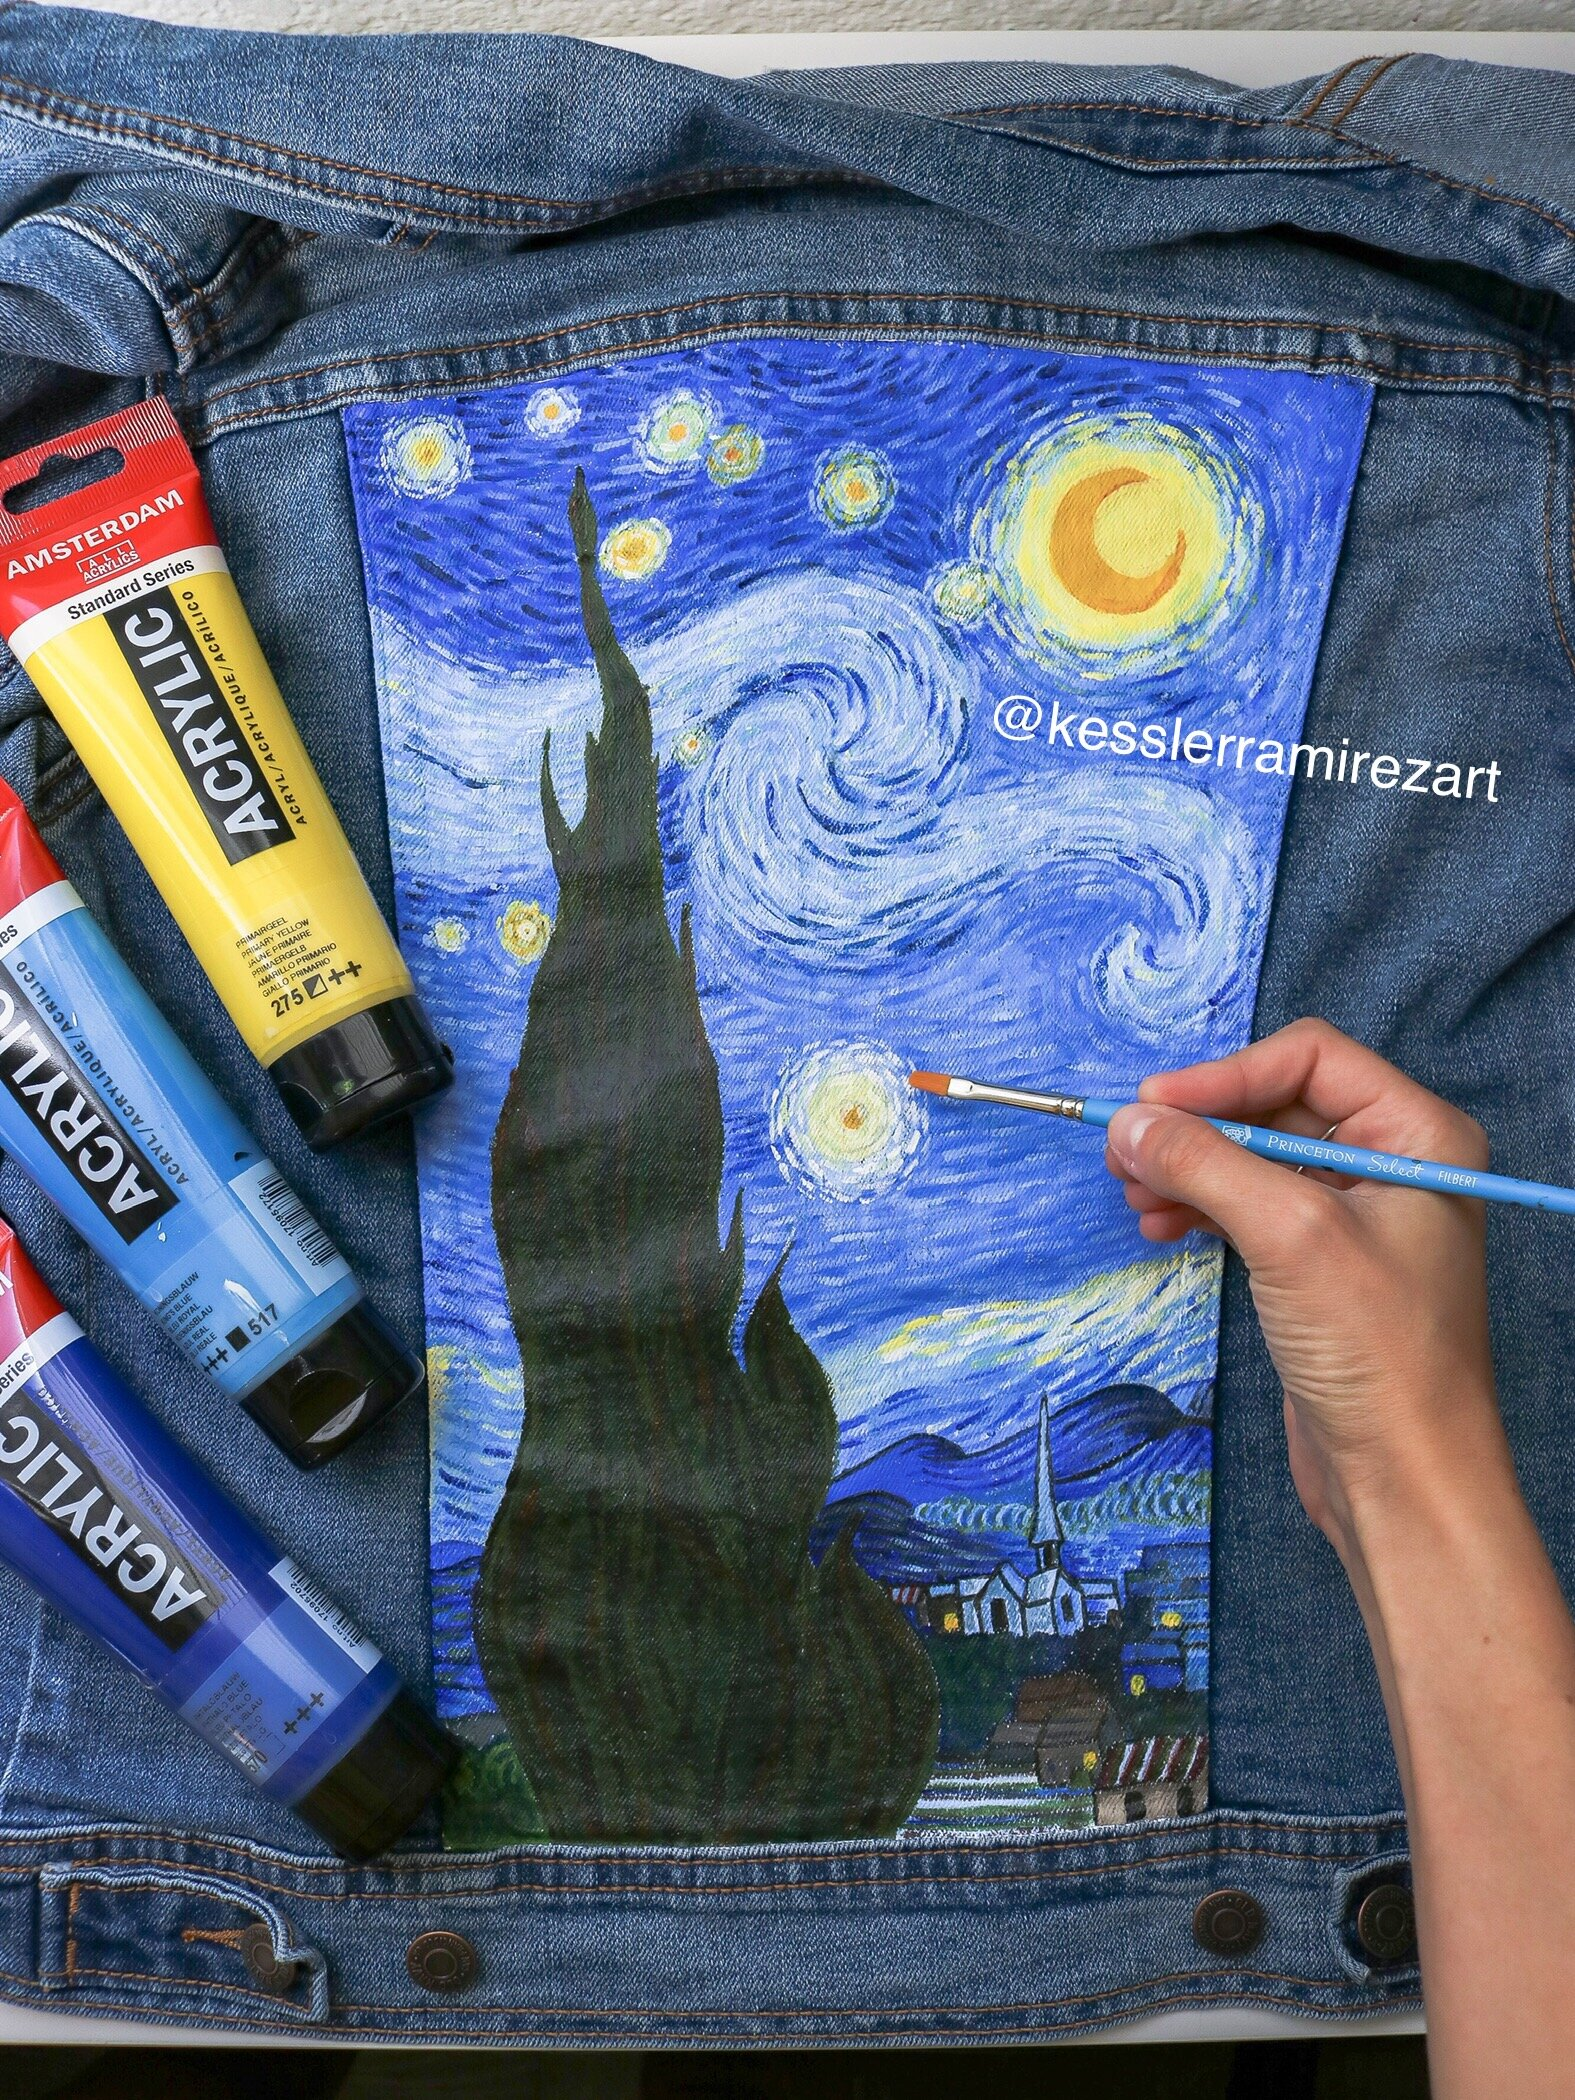 Denim Painting 101 Paint And Supplies Kessler Ramirez Art Travel